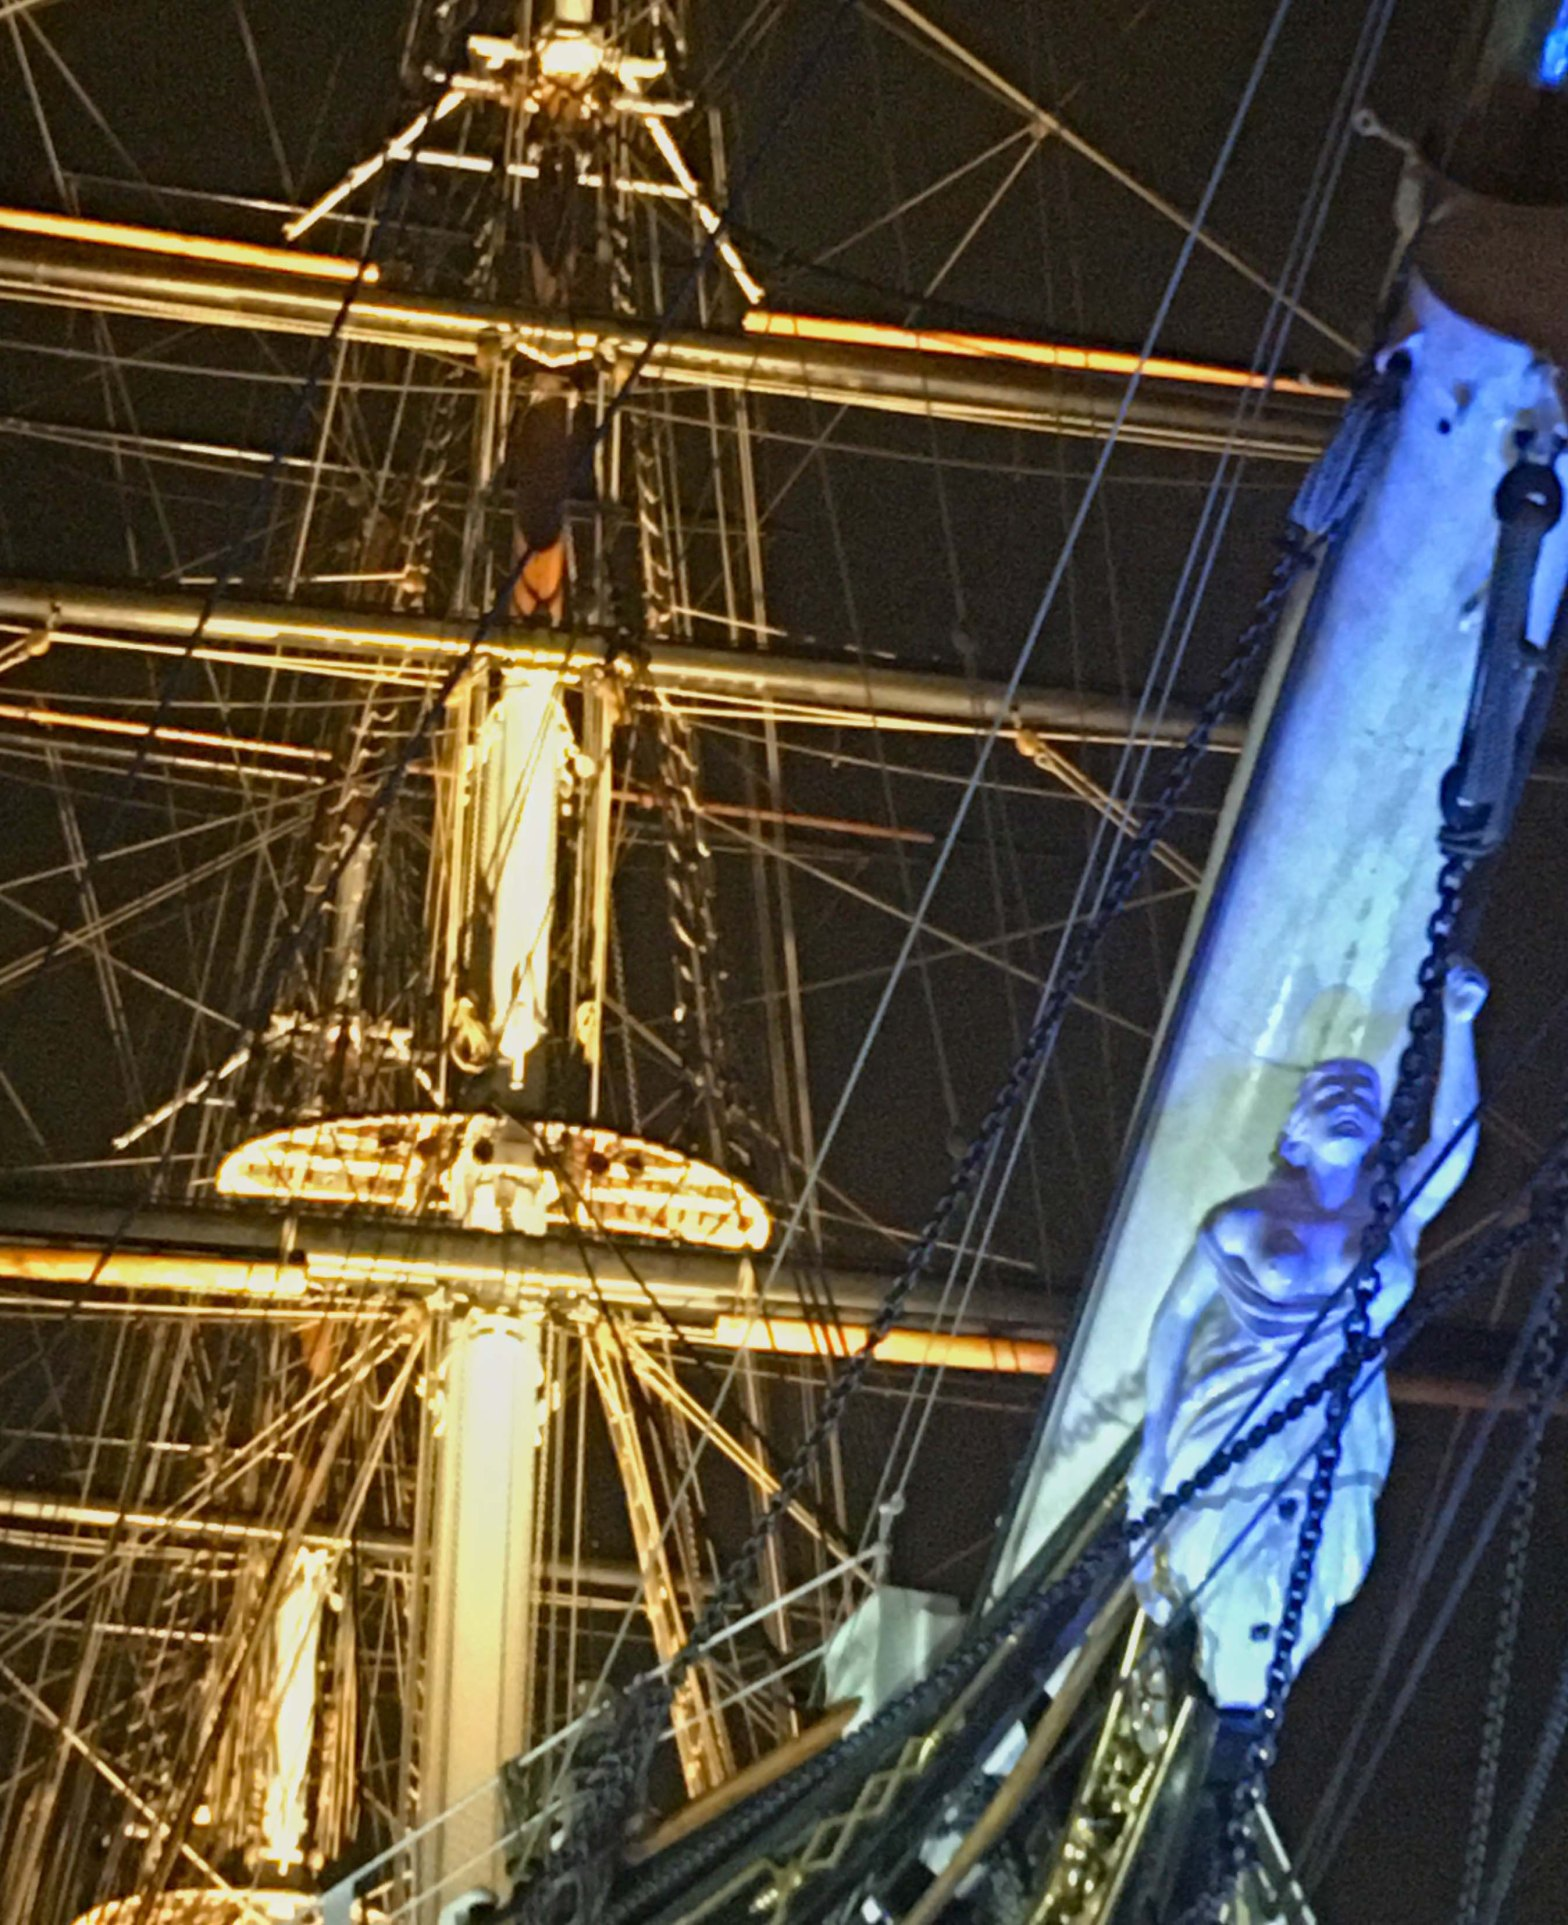 Photograph of the Cutty Sark, Greenwich, London